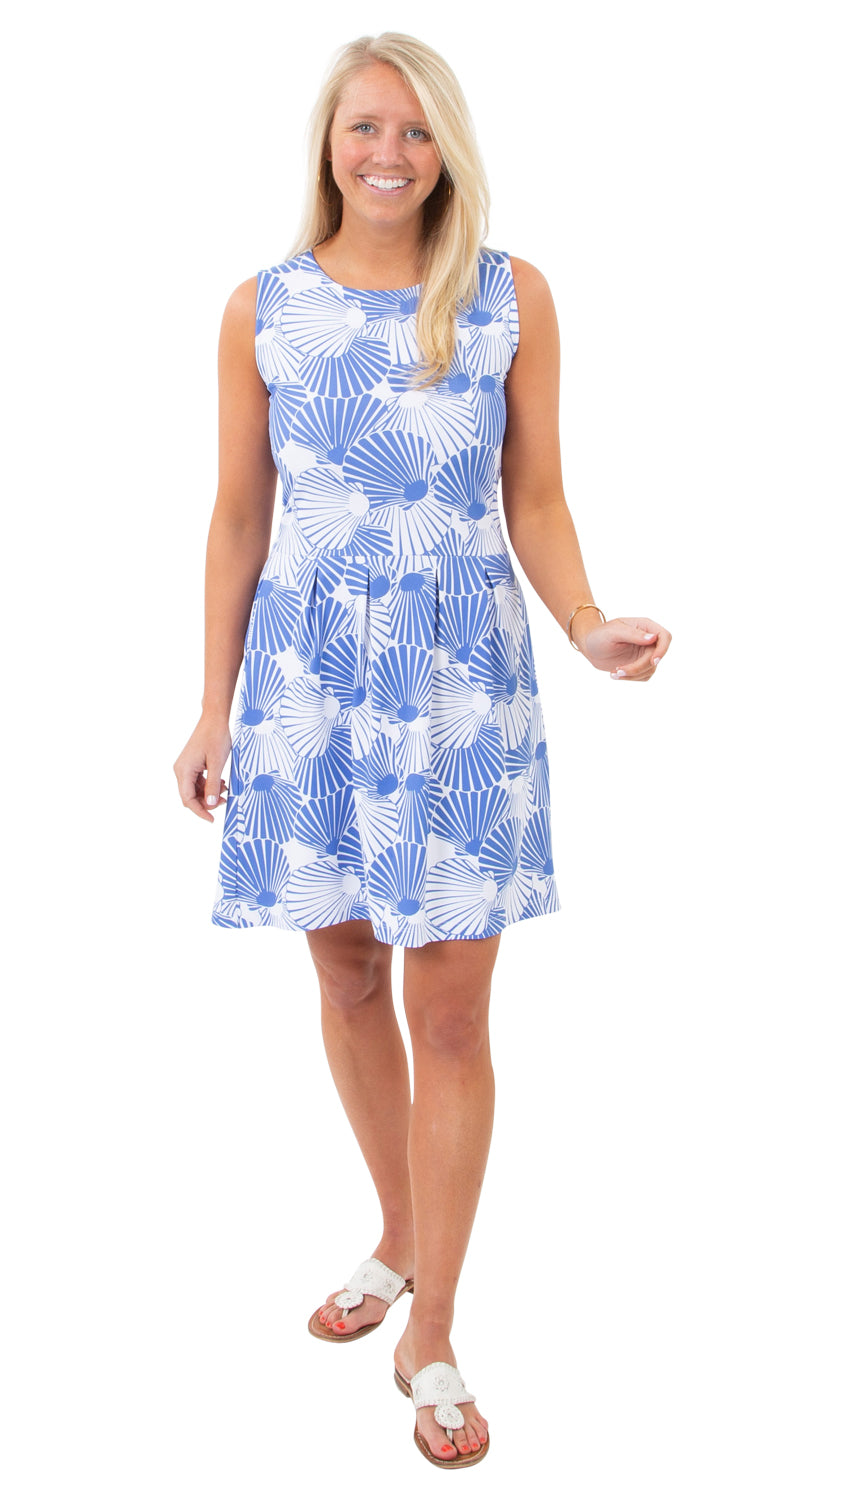 Boardwalk Dress - Scattered Scallops- FINAL SALE